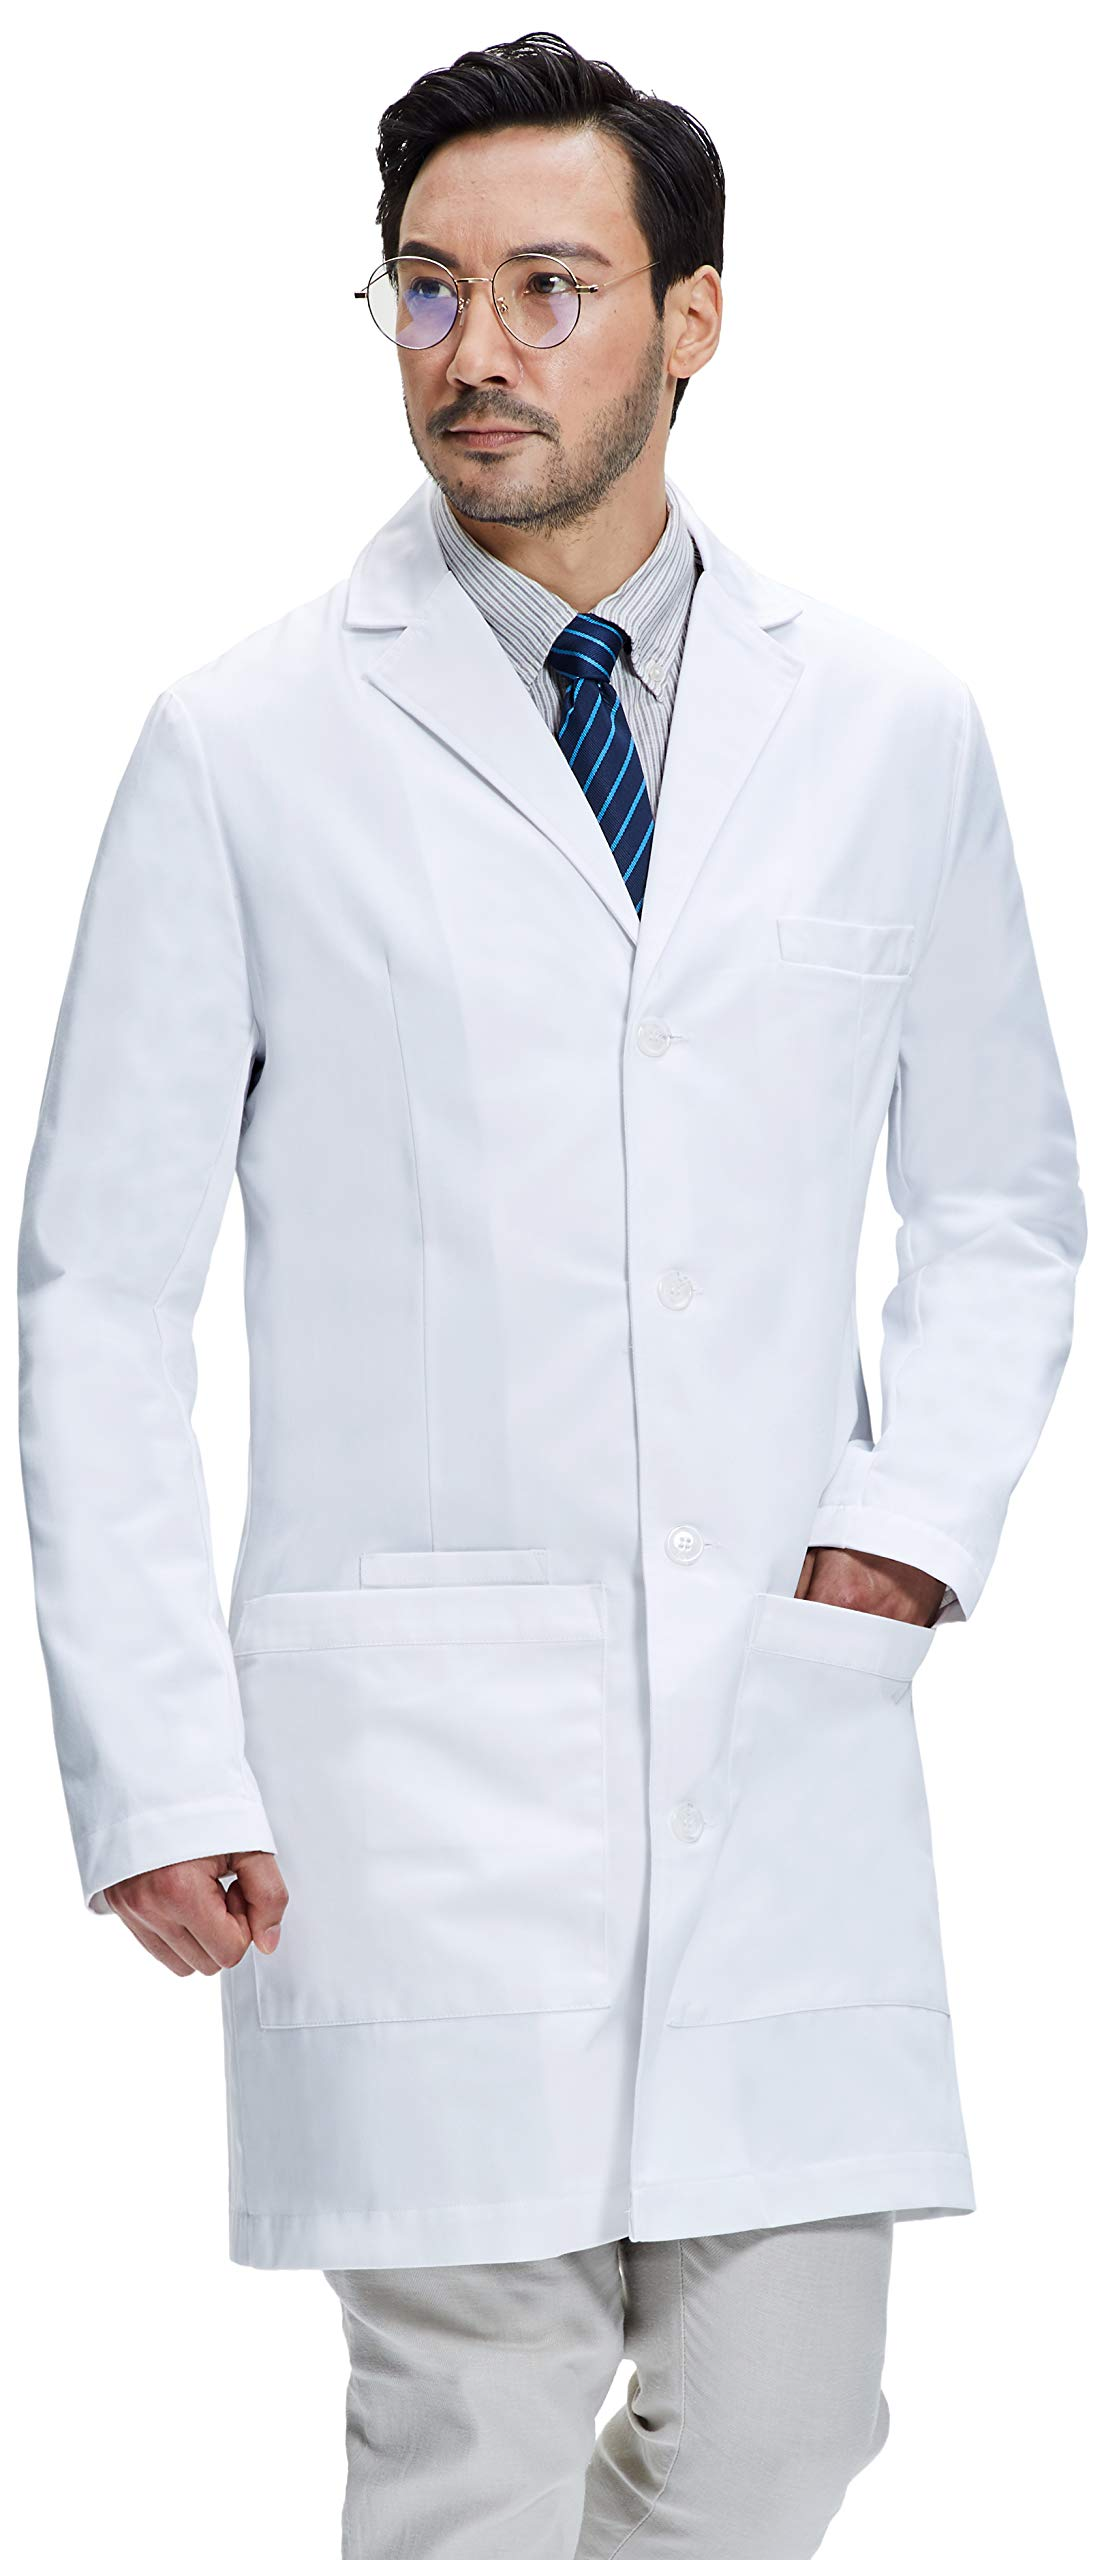 Dr. James Men's Semi-Tailored Fitted Lab Coat (38 Inch Length) Size M